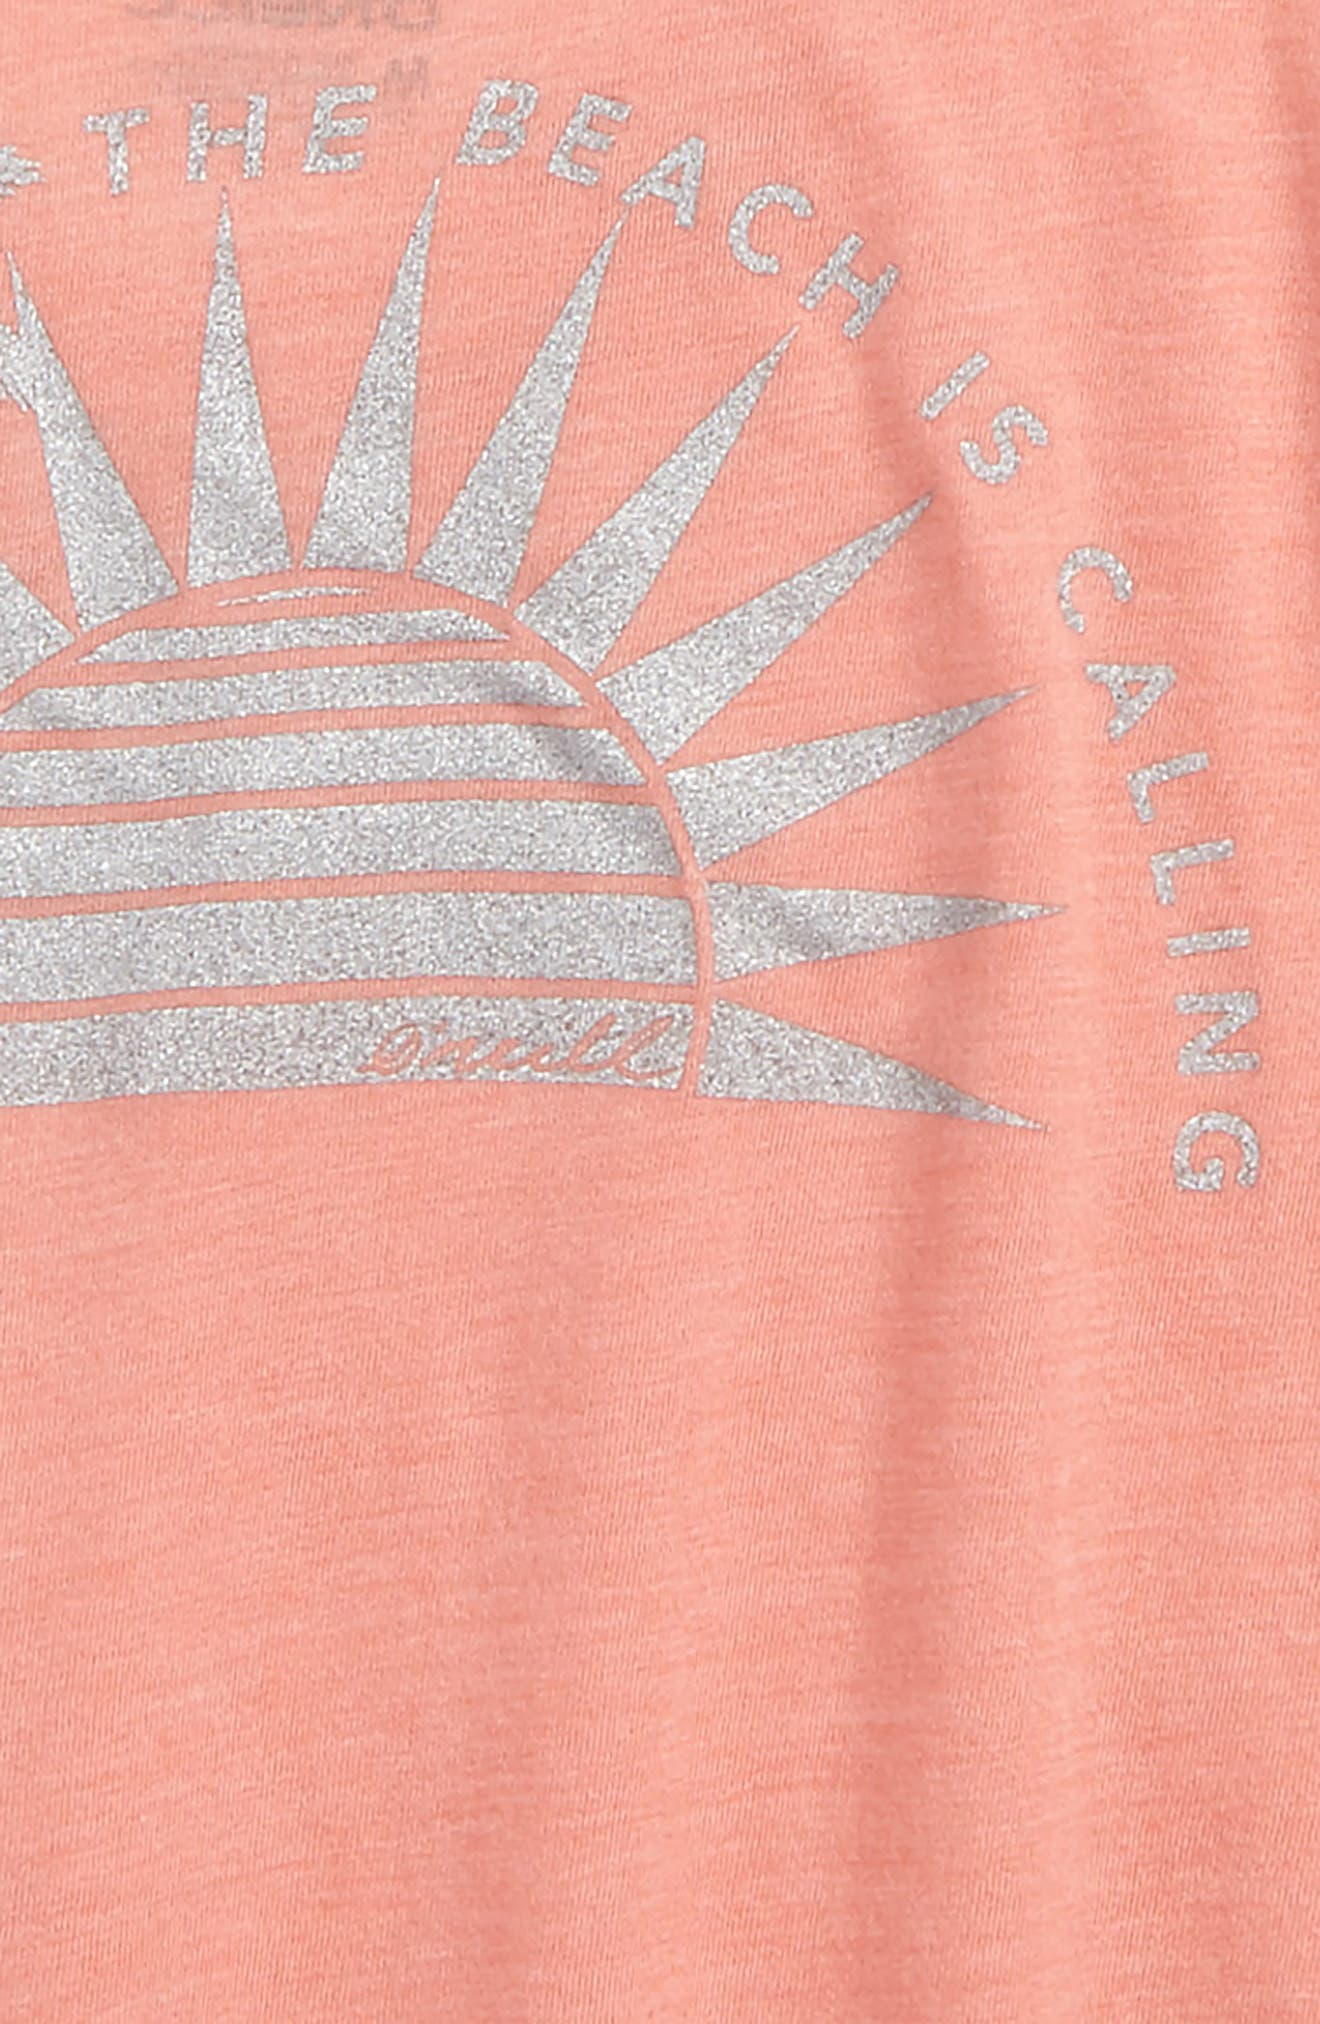 Sunny Side Graphic Tee,                             Alternate thumbnail 5, color,                             900